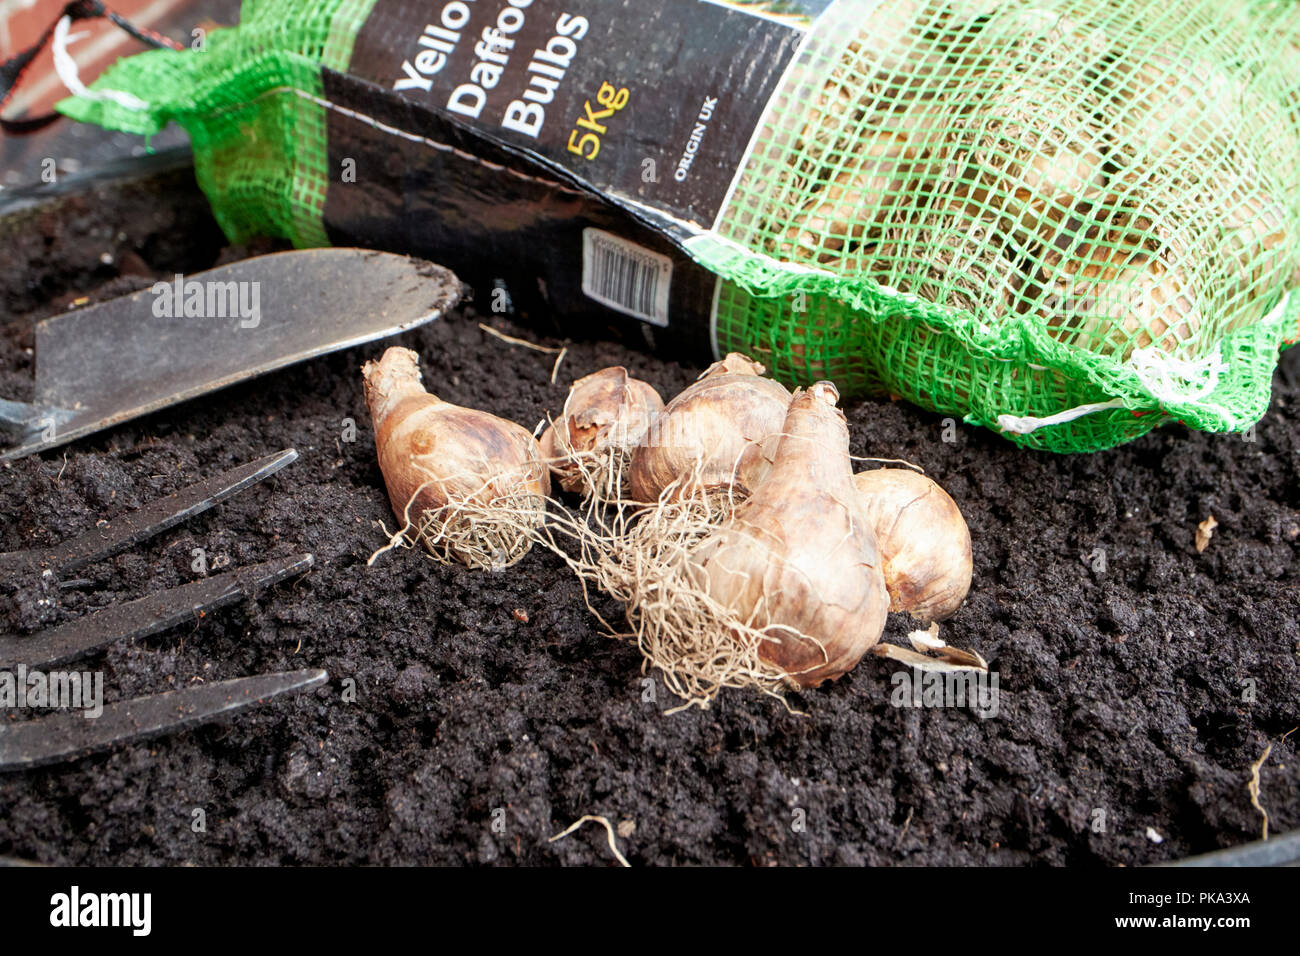 planting spring flowering daffodil bulbs in autumn in a garden in the uk - Stock Image